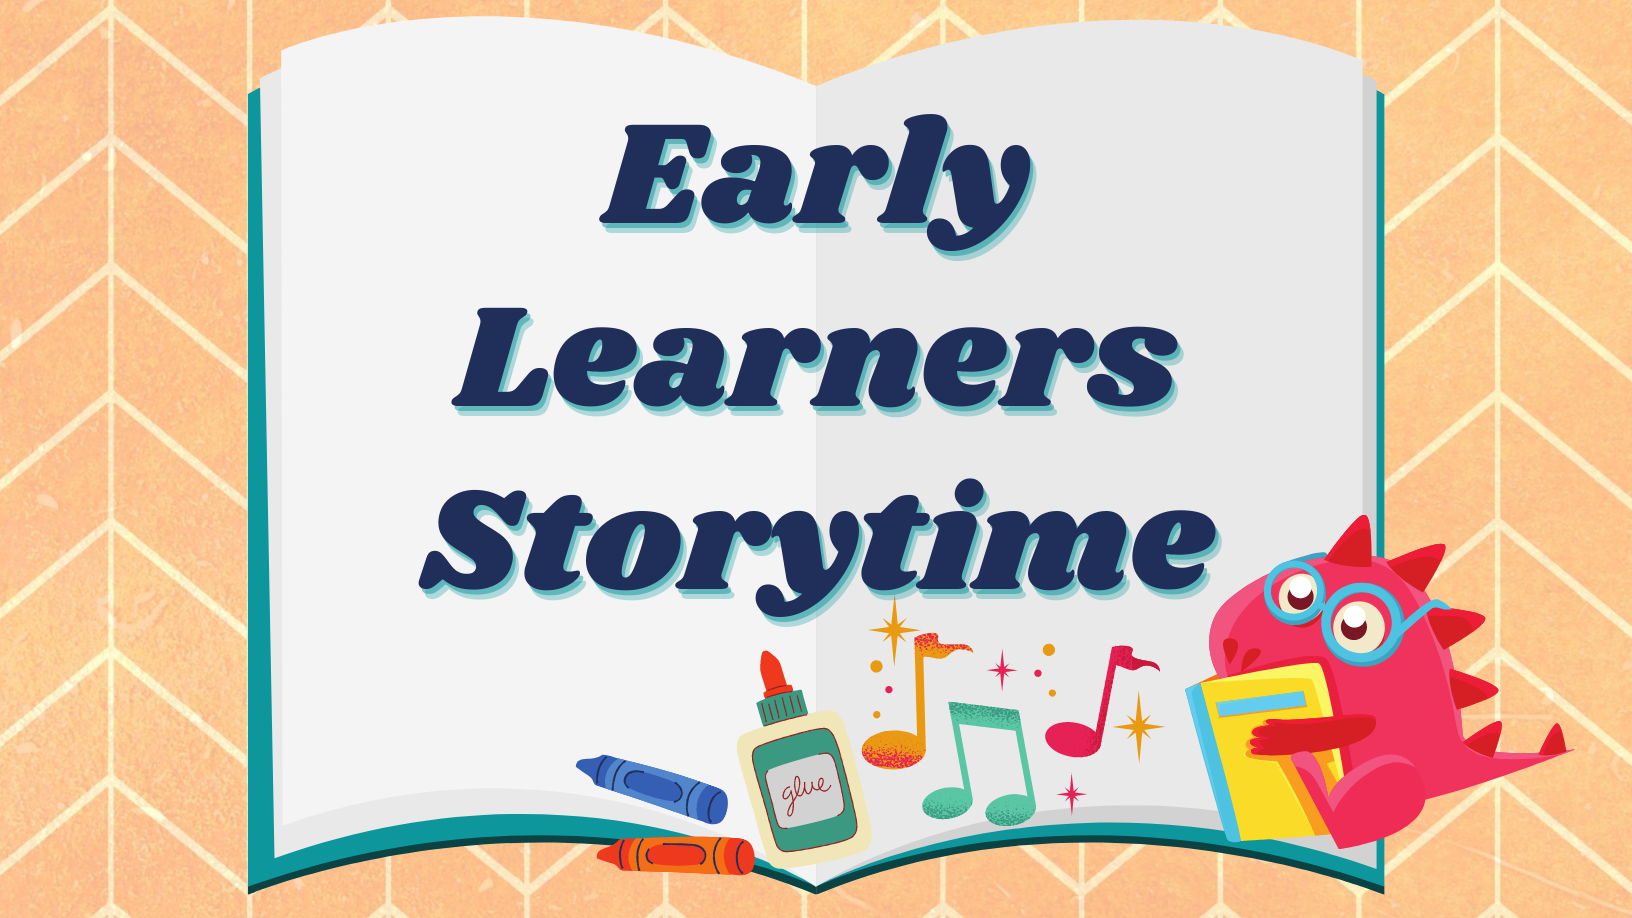 Early Learners Story Time